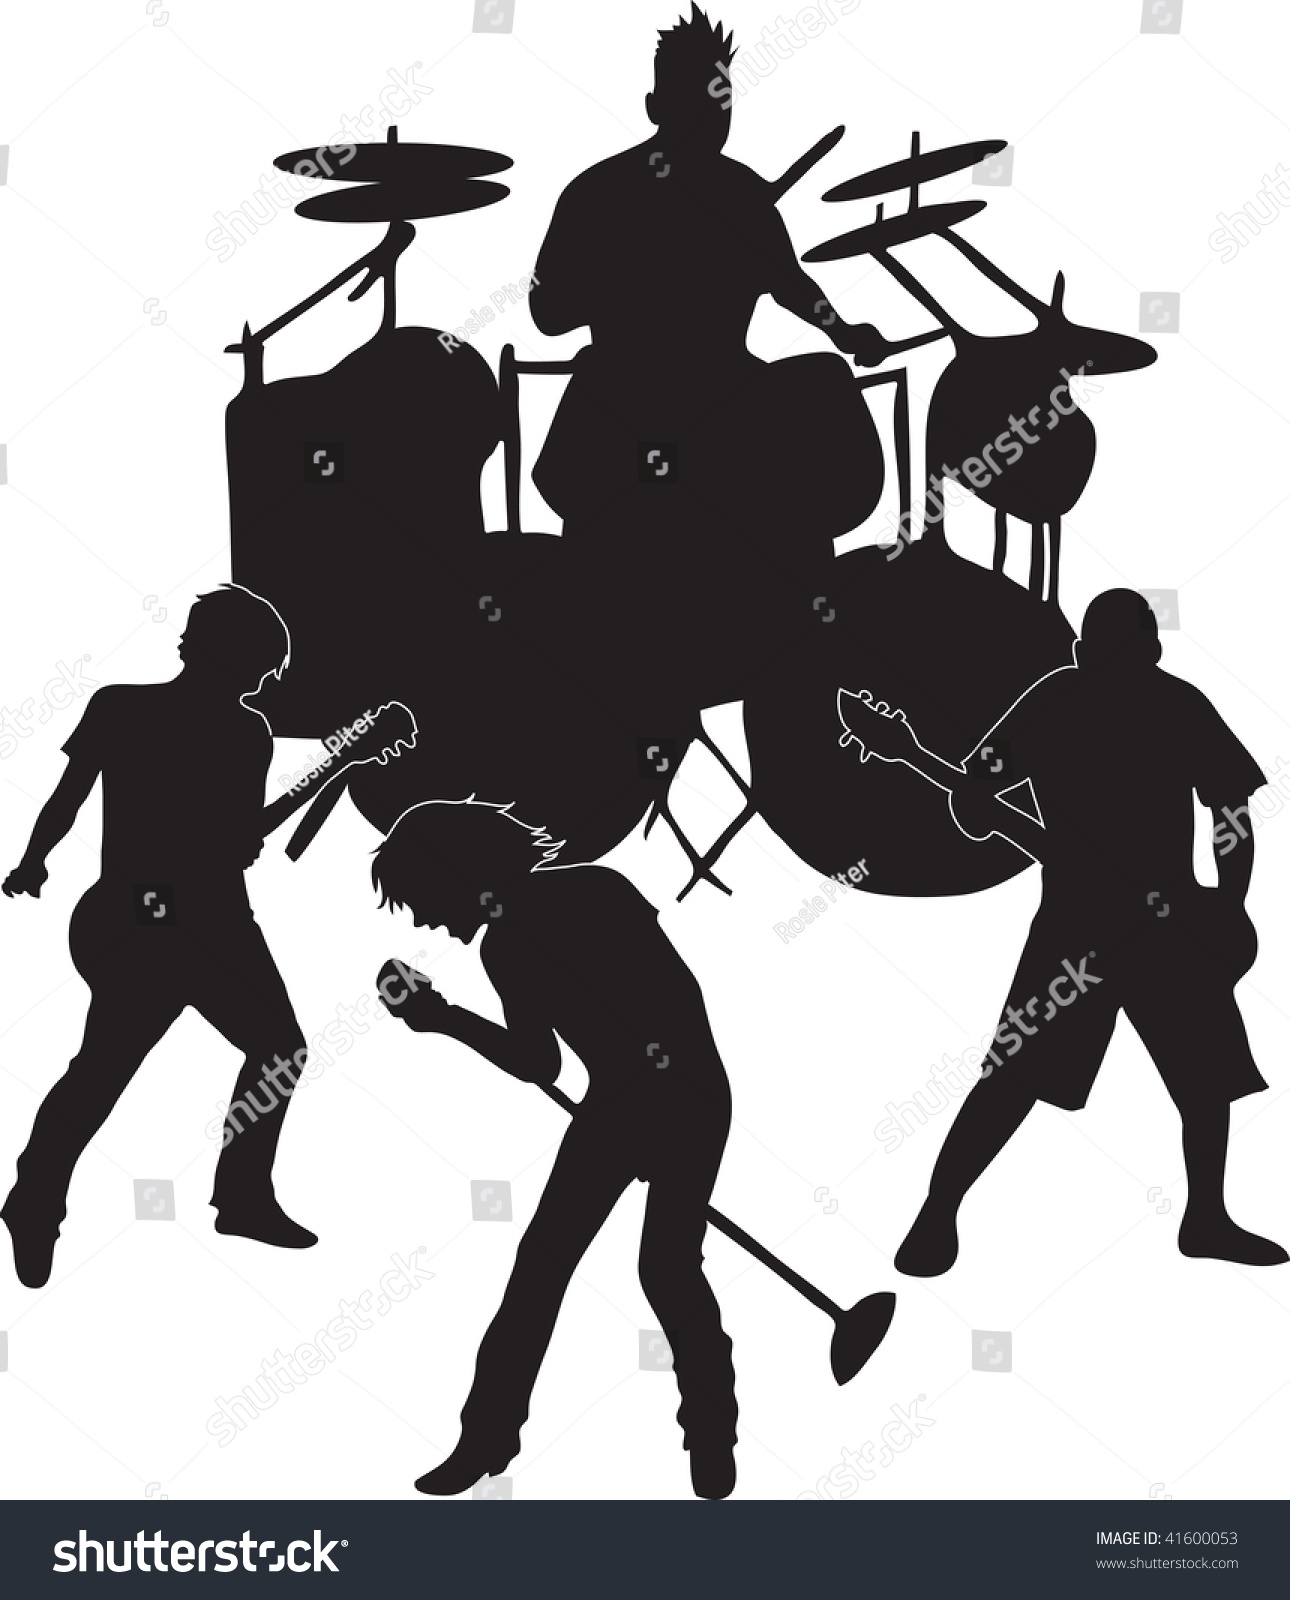 Band Clipart Black And White.